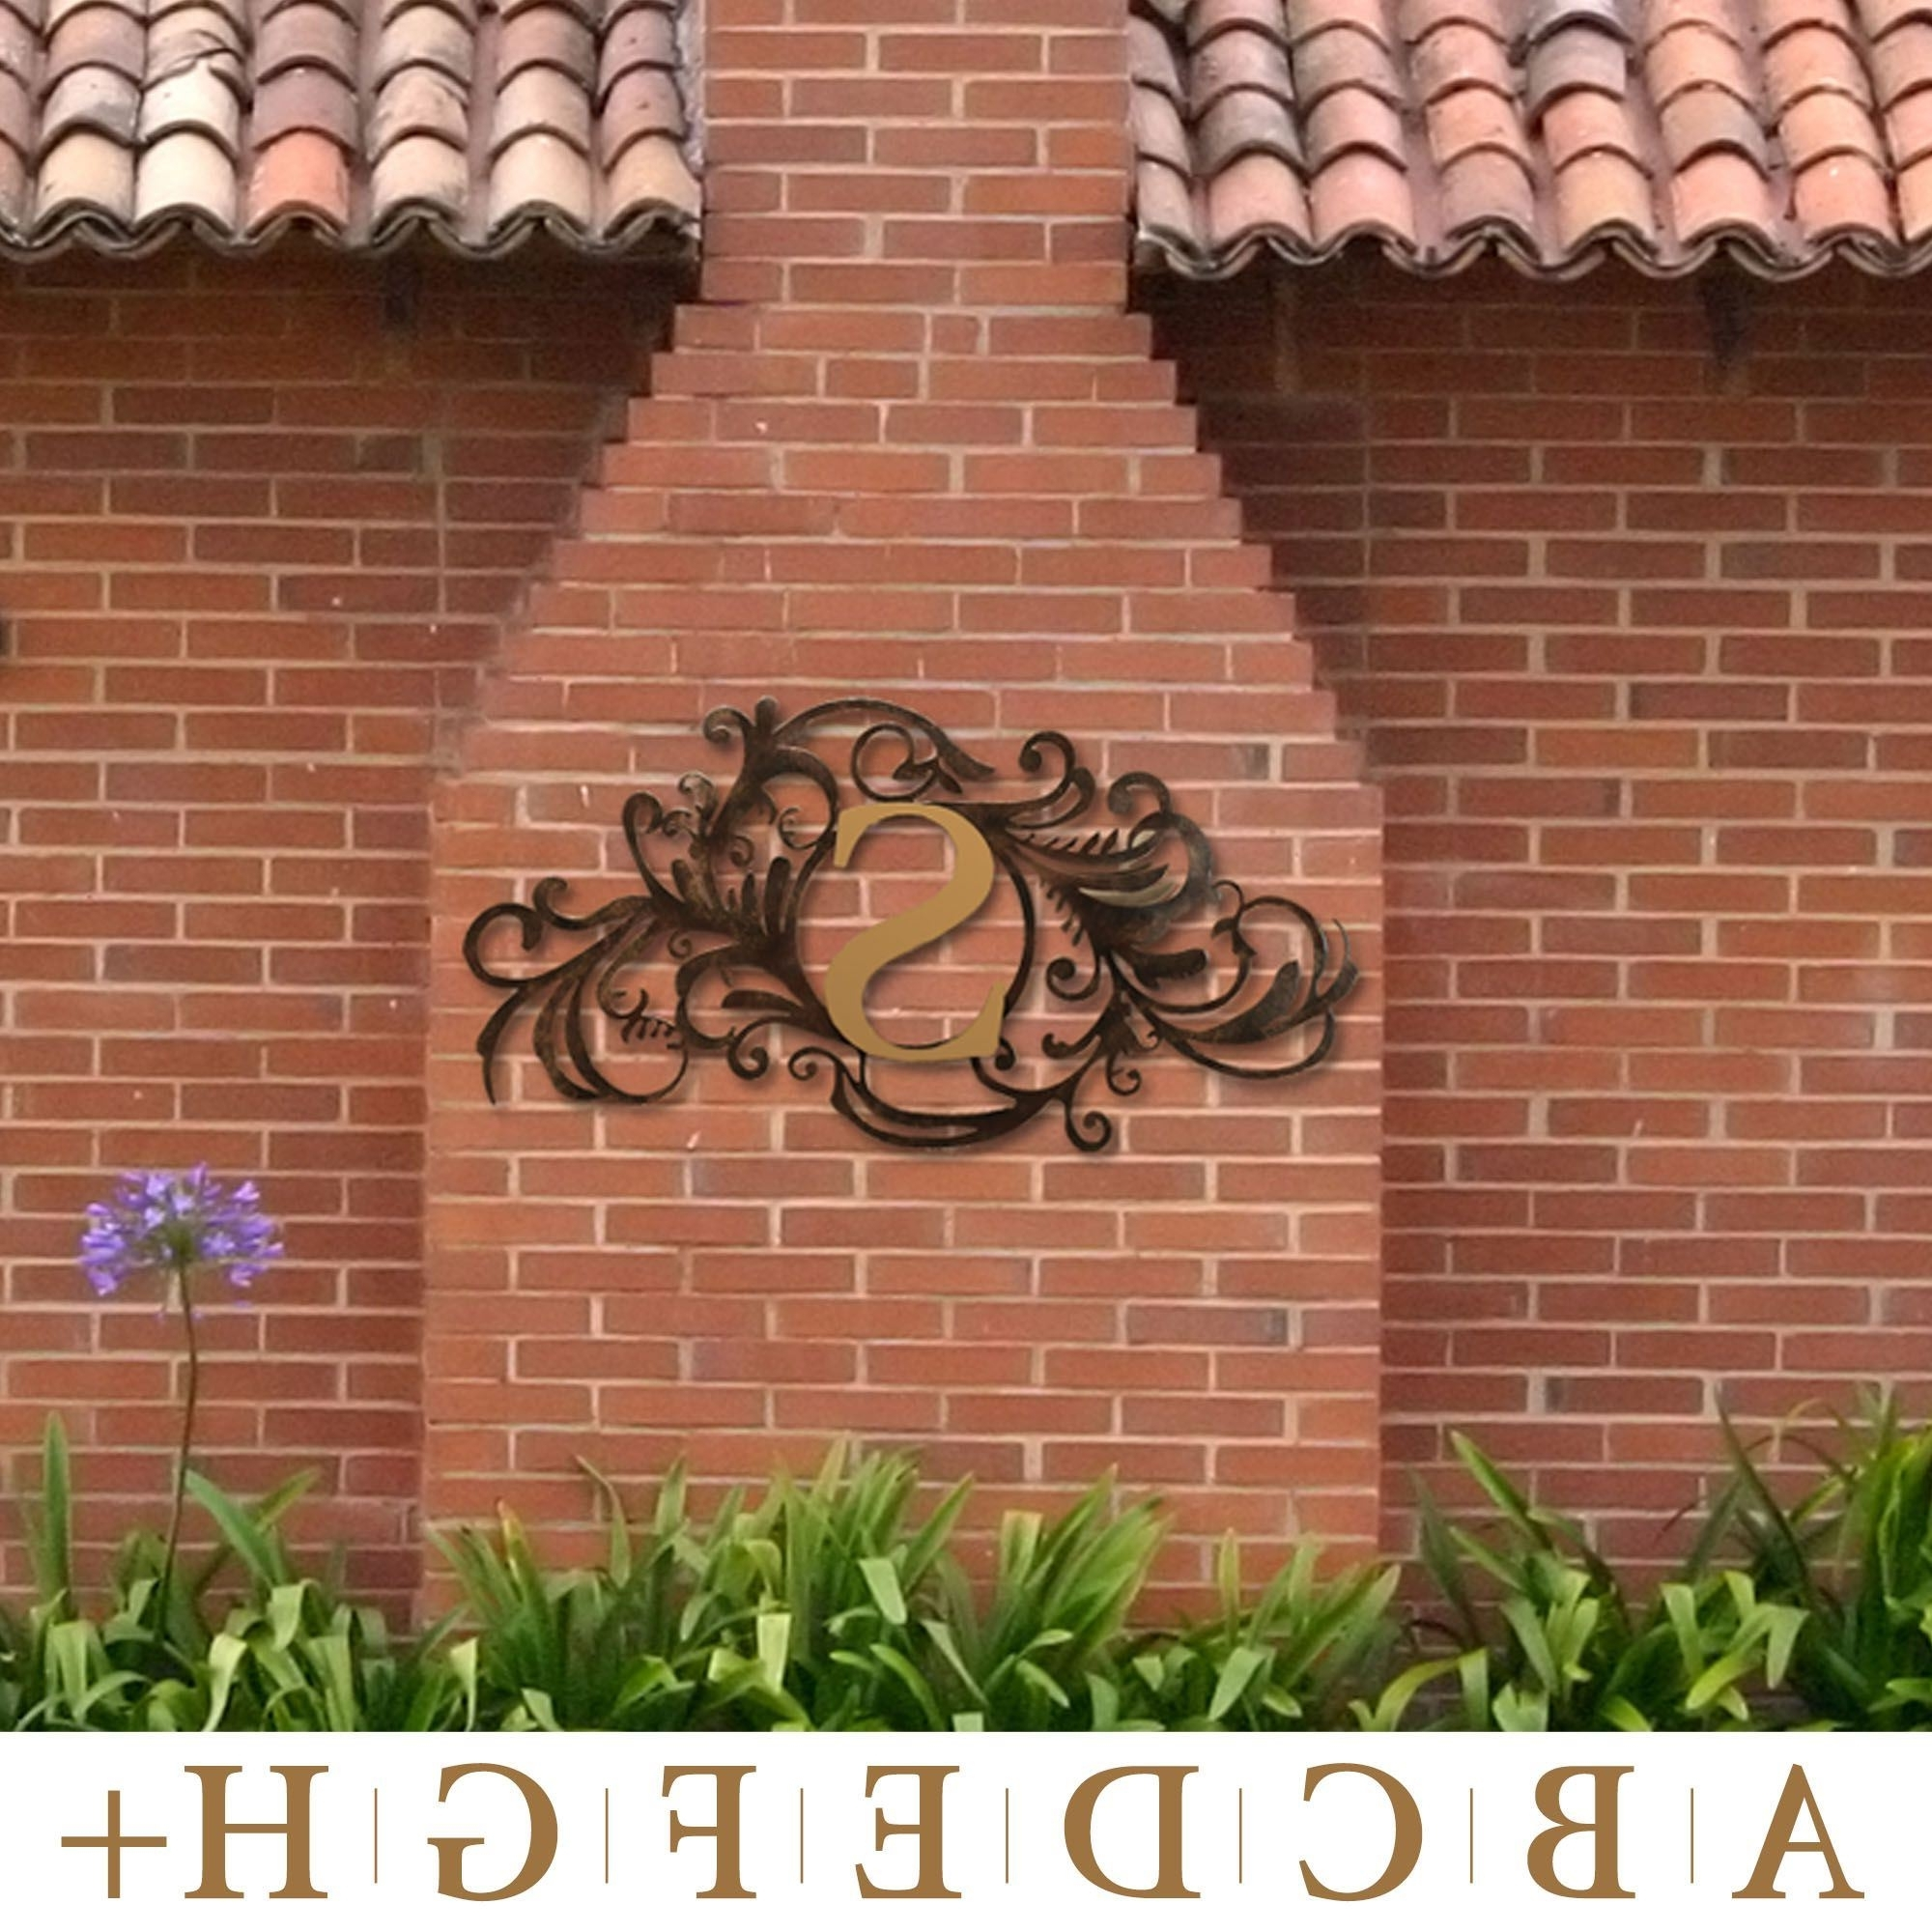 Metal Wall Art For Outdoors Inside 2018 Evanston Indoor Outdoor Monogram Metal Wall Art Sign (View 7 of 15)